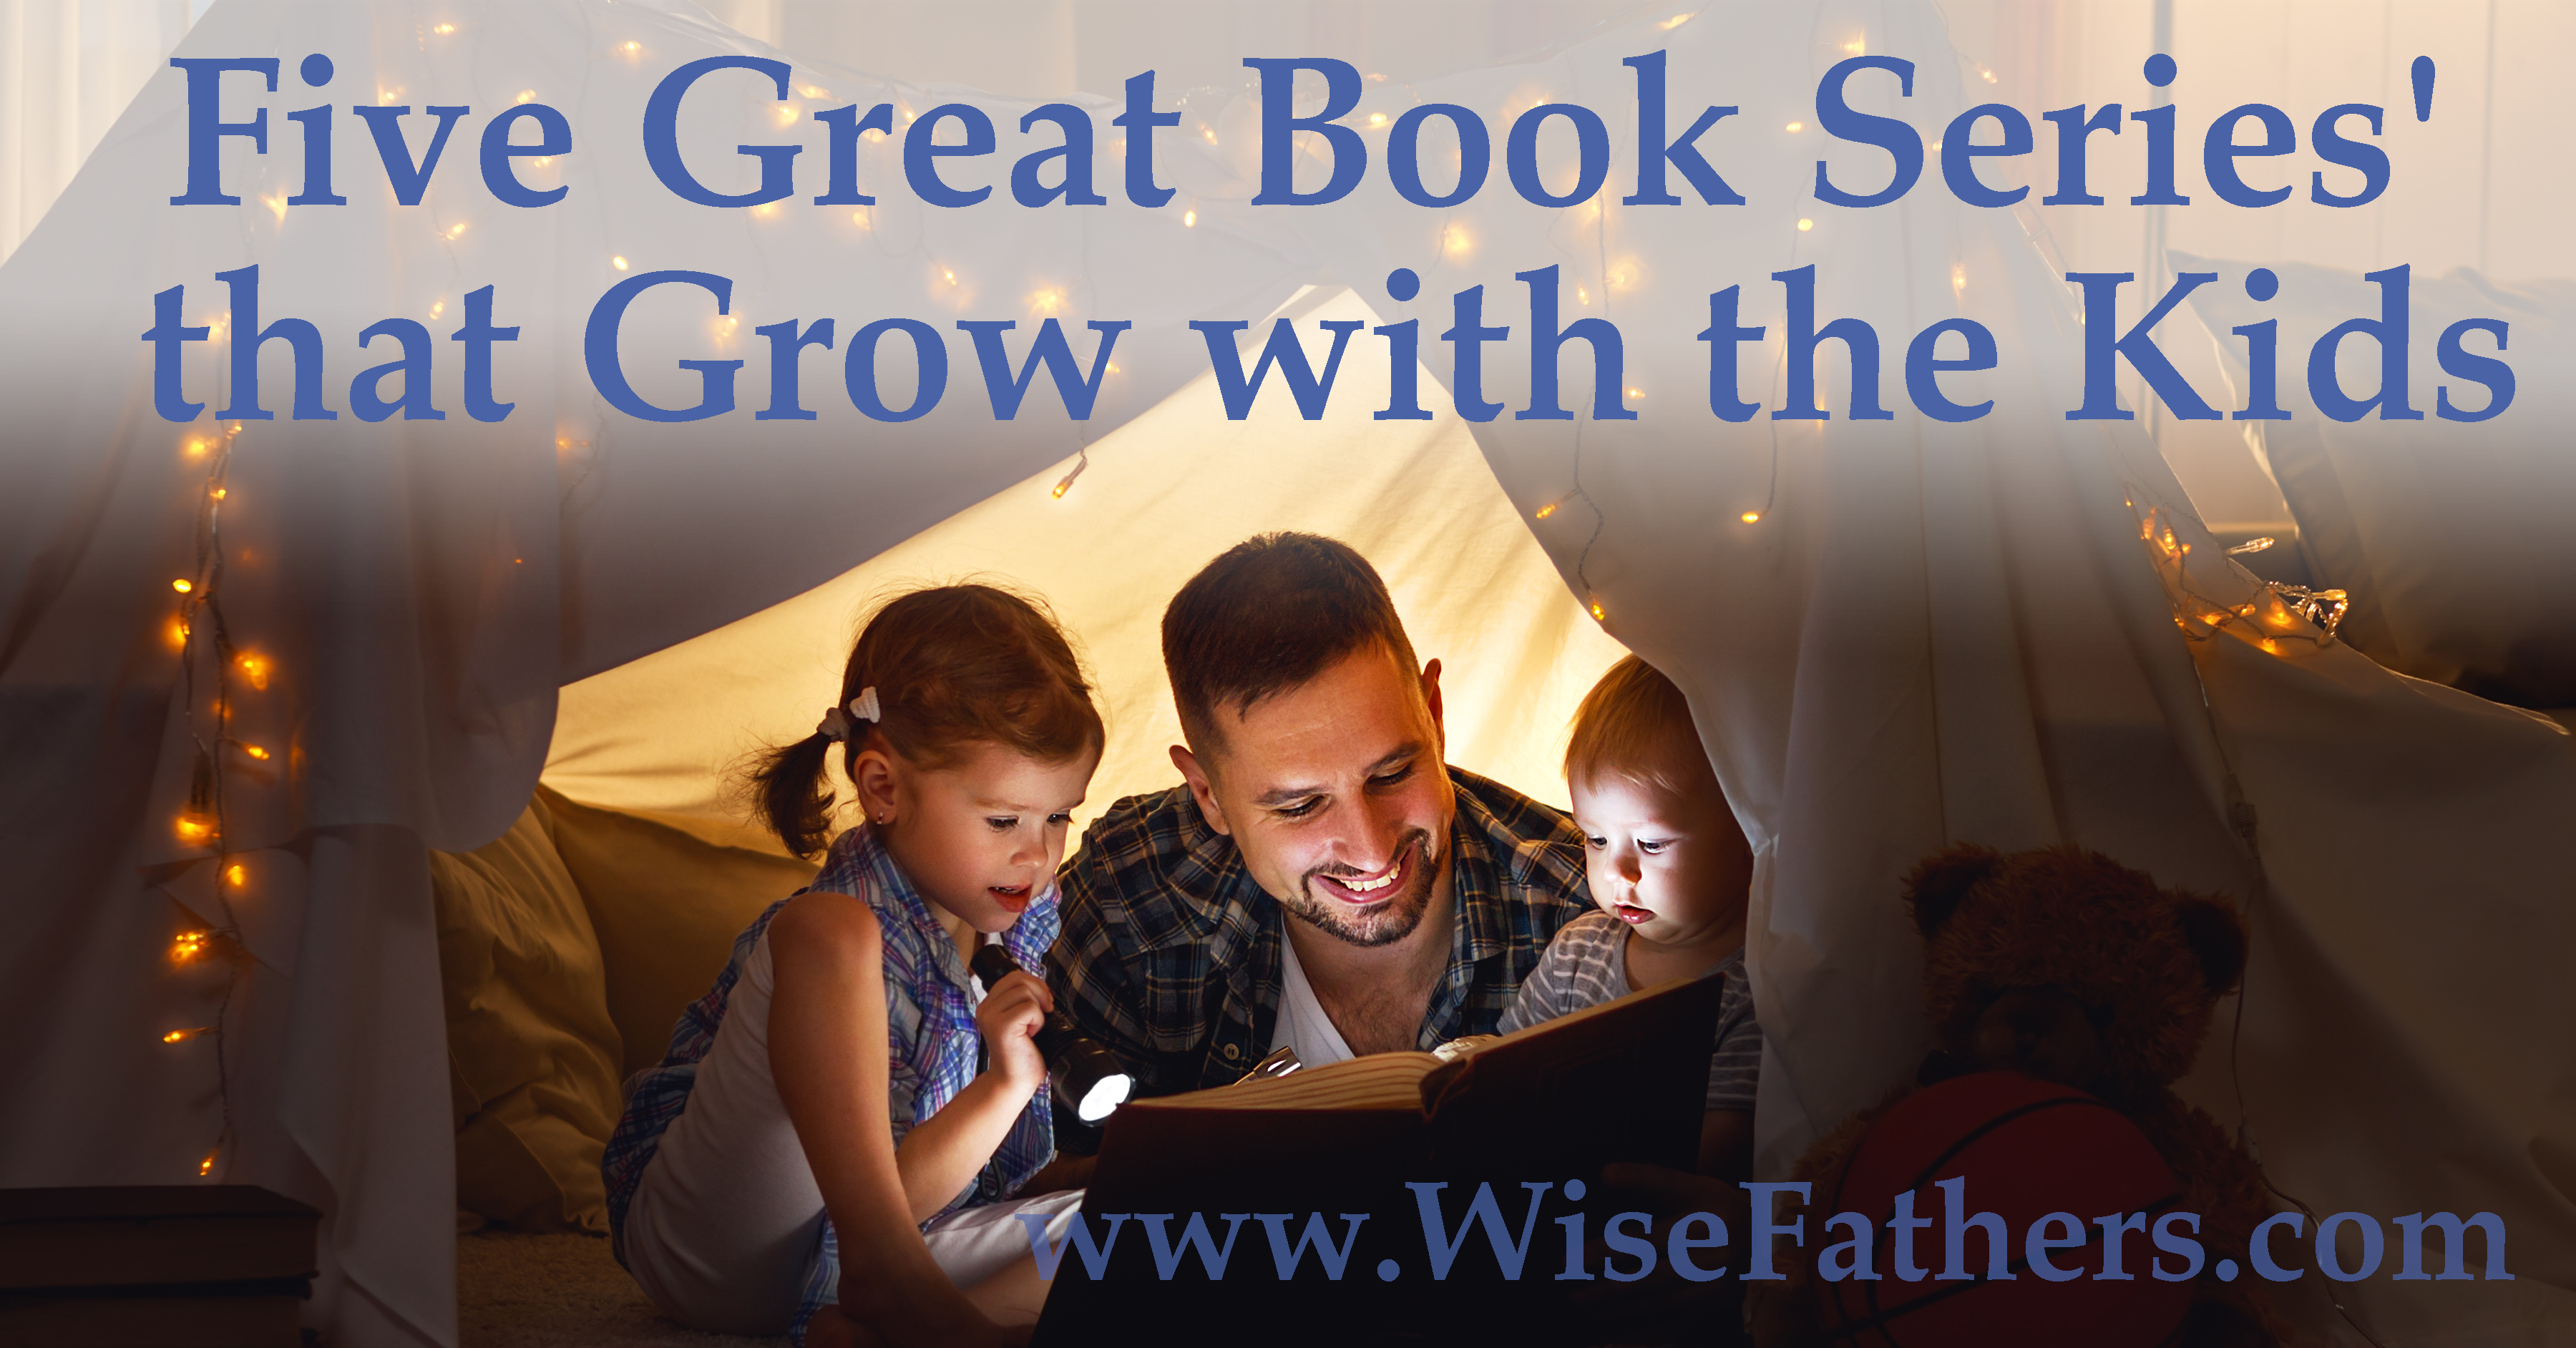 Five Great Book Series' that Grow with the Kids